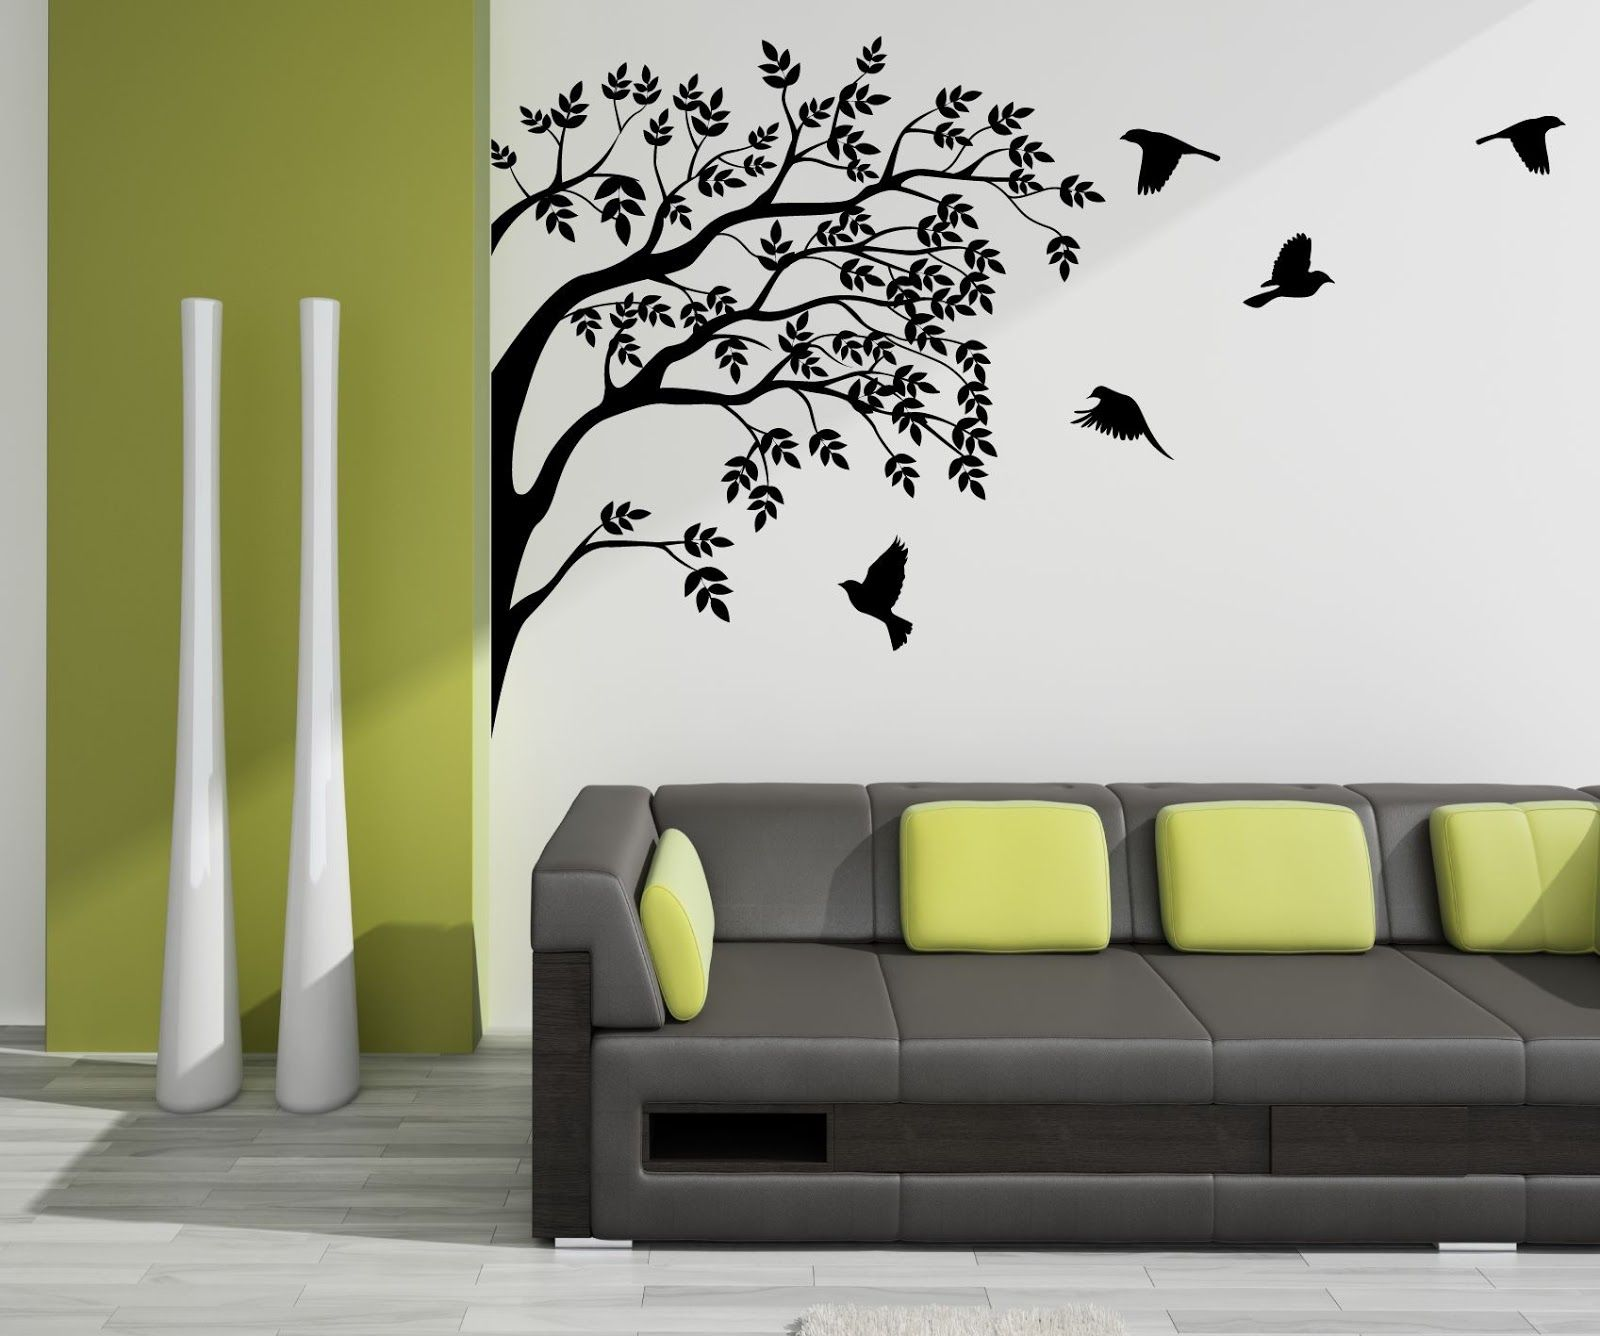 Home Wall Design Ideas Photo Bedroom Wall Designs Simple Wall